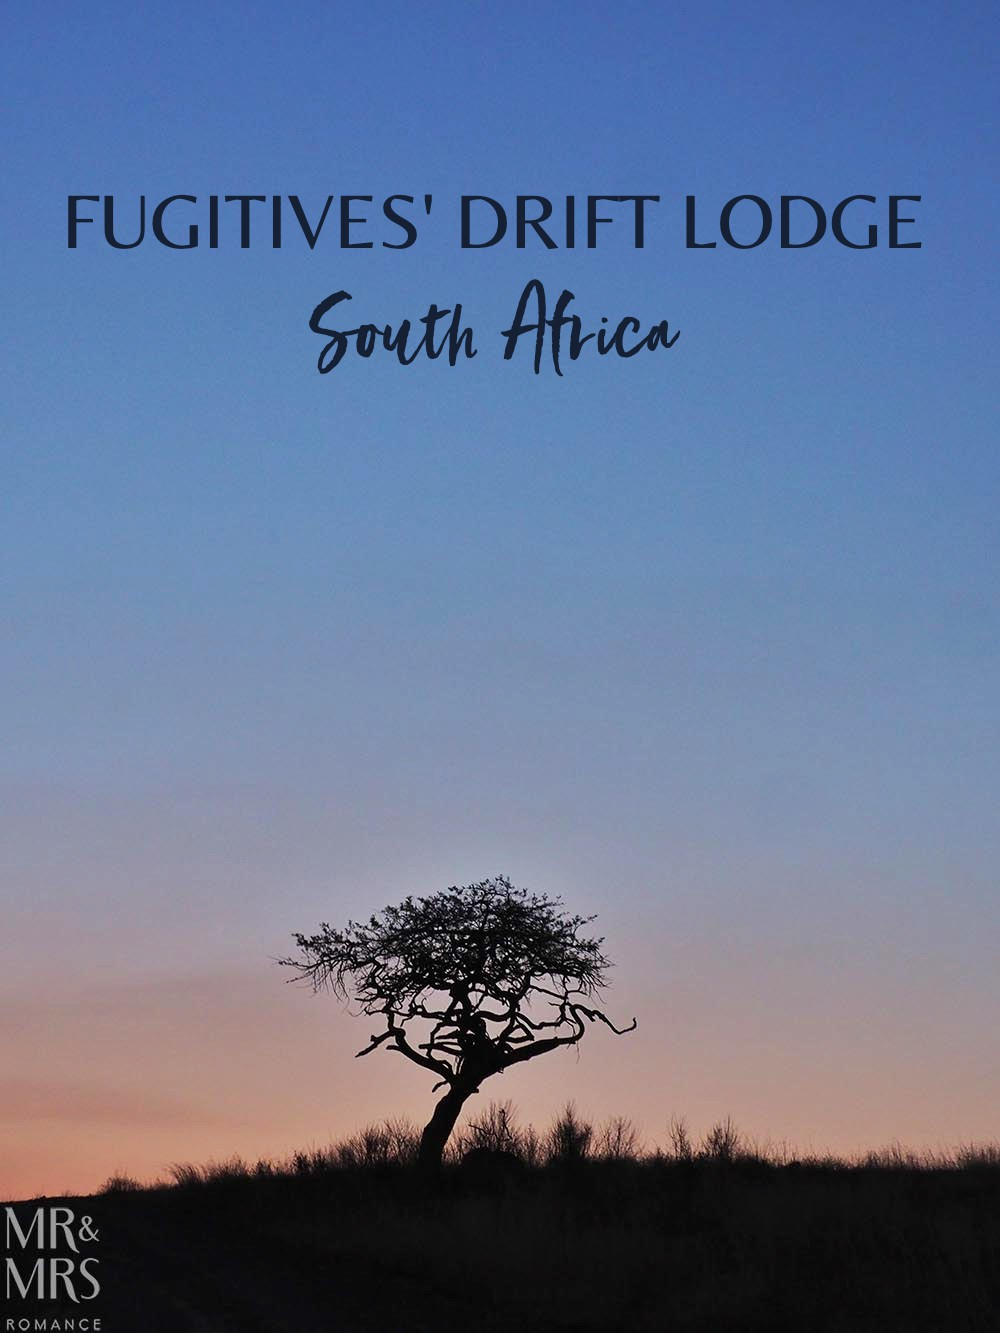 Fugitives' Drift Lodge, South Africa - home of the Rattray family, this is the perfect base to explore Isandlwana and Rorke's Drift